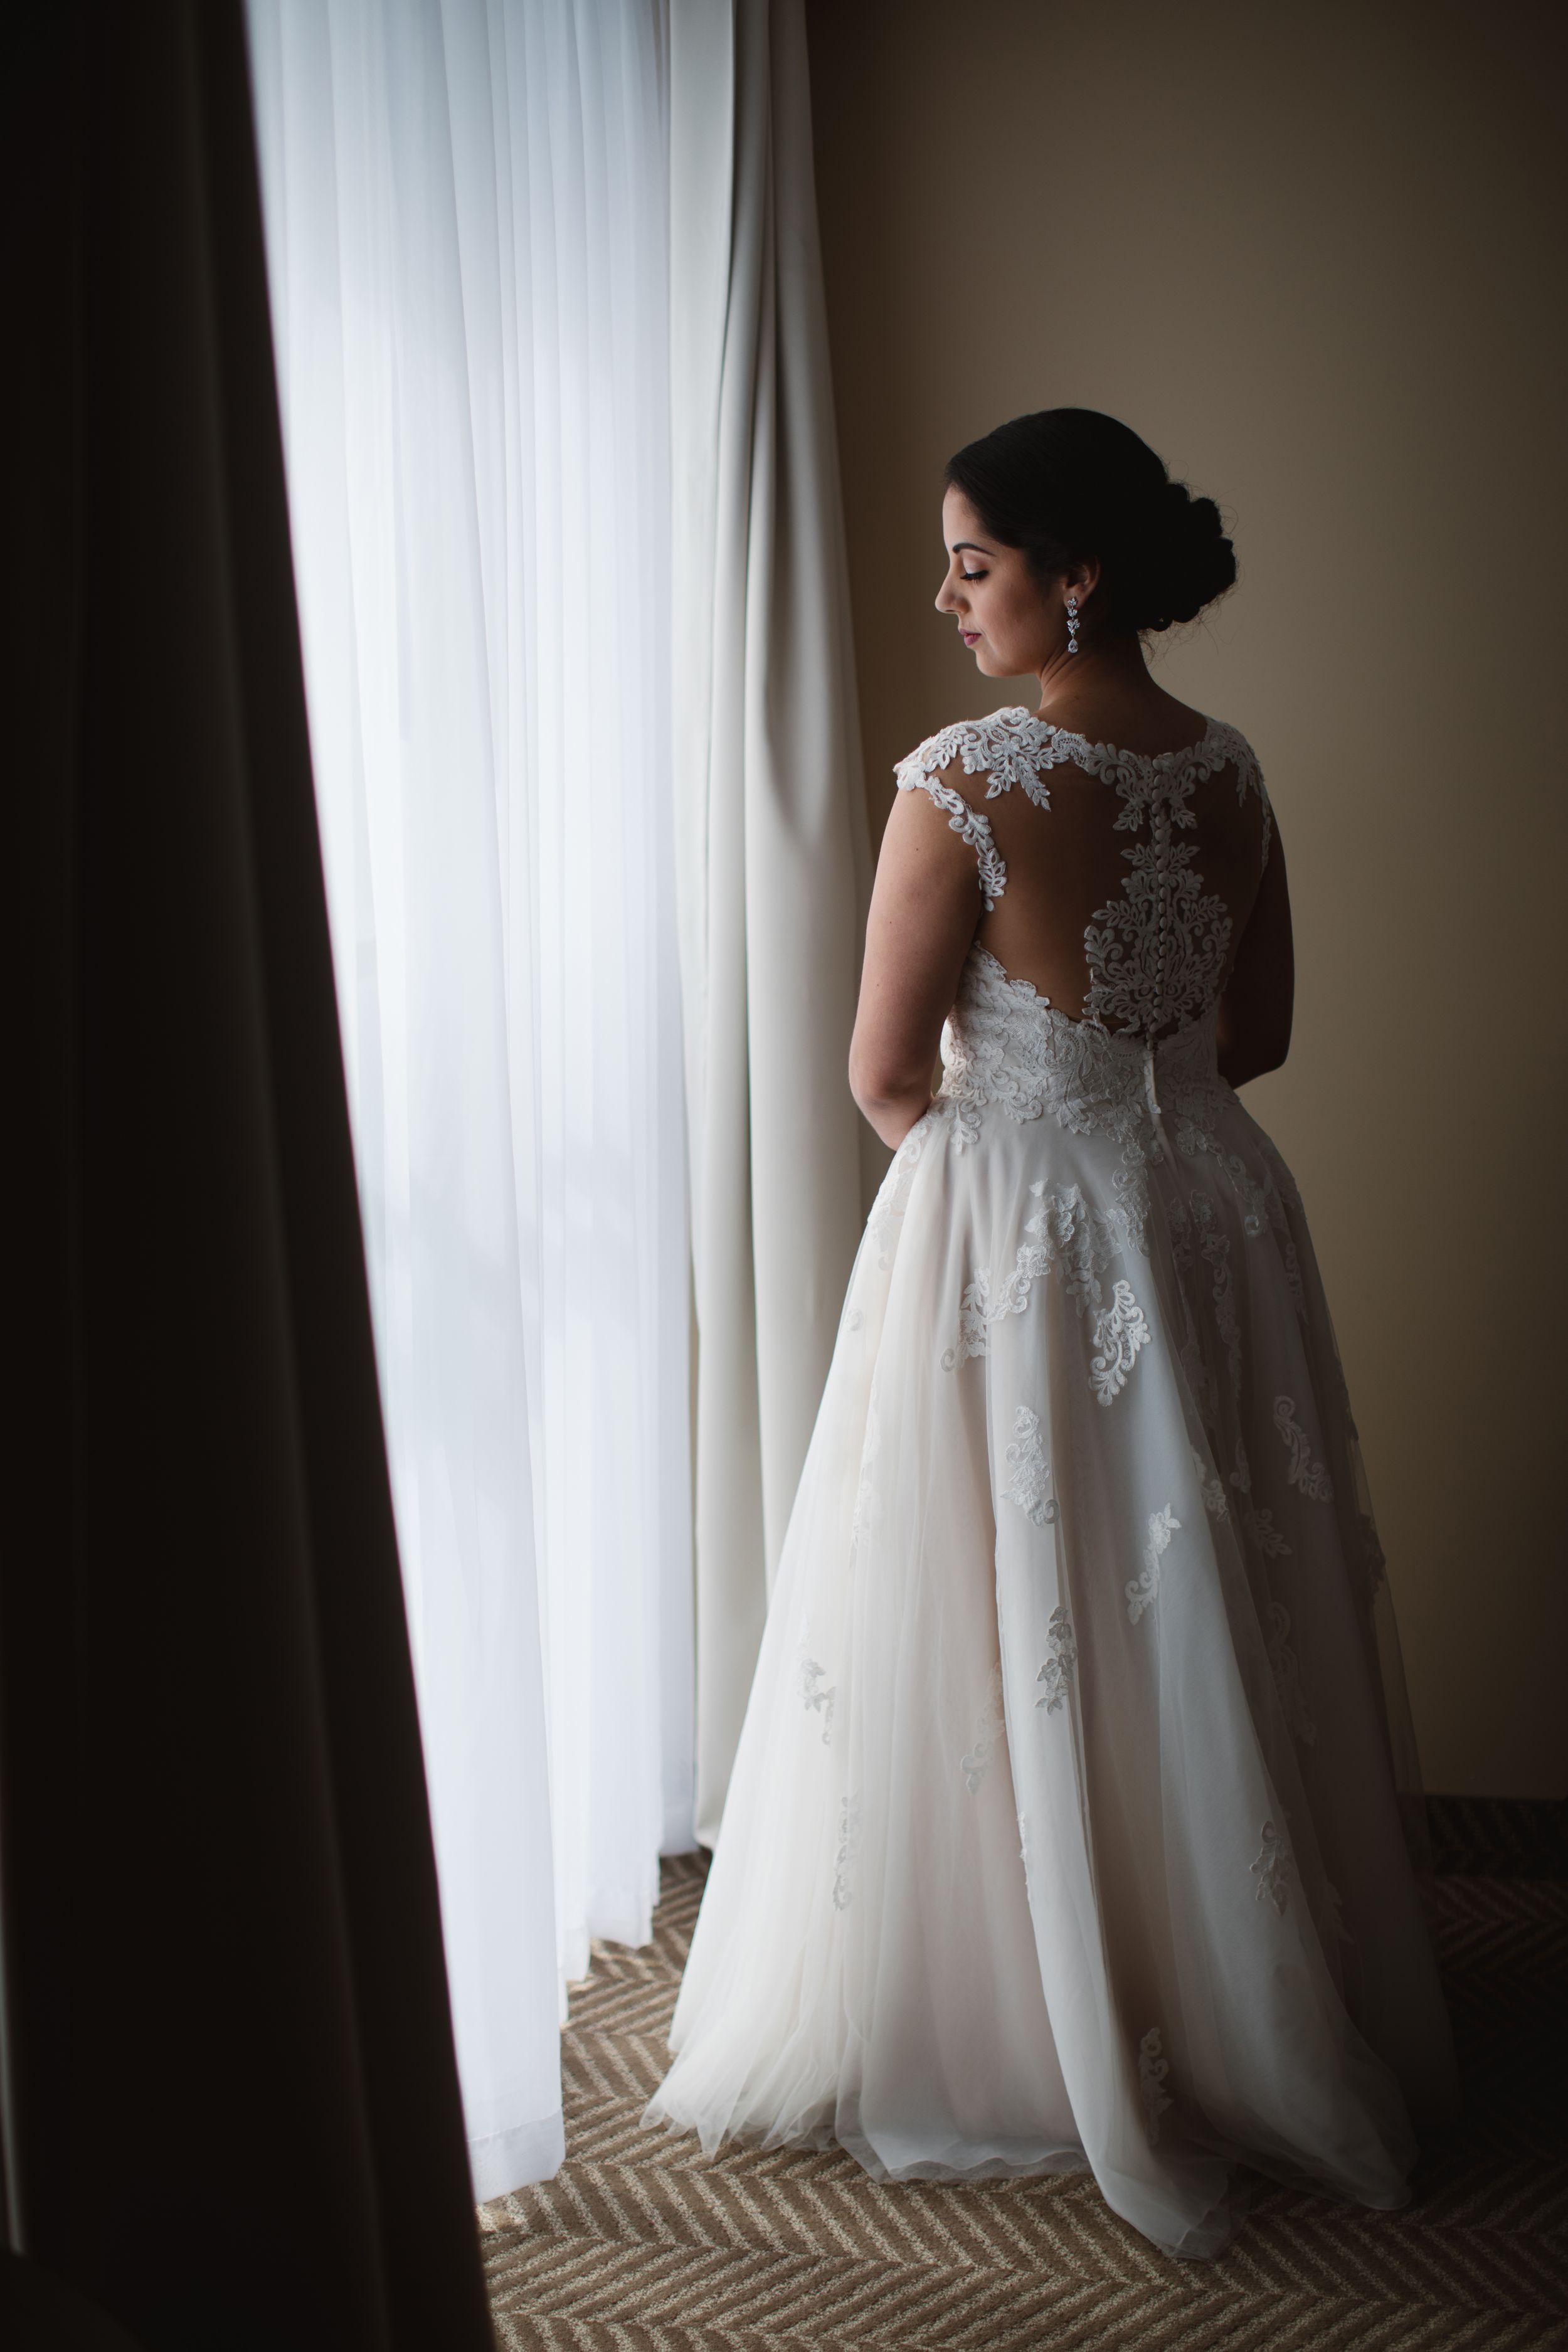 bride in wedding dress standing next to a window